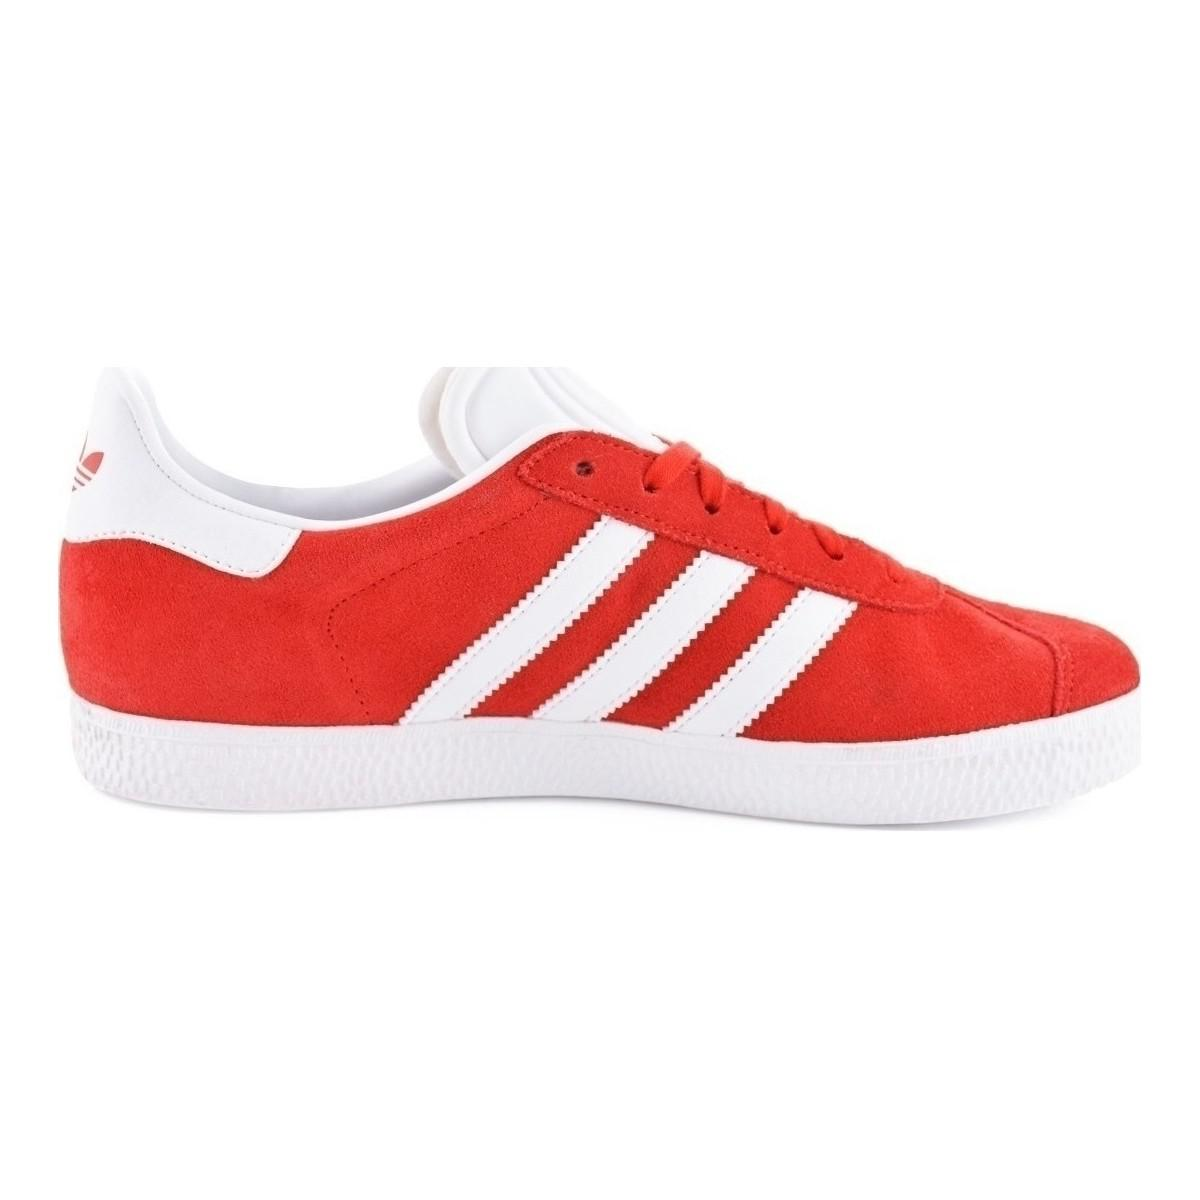 separation shoes ea4a4 7371f Adidas Gazelle J Womens Shoes (trainers) In Red in Red - Lys